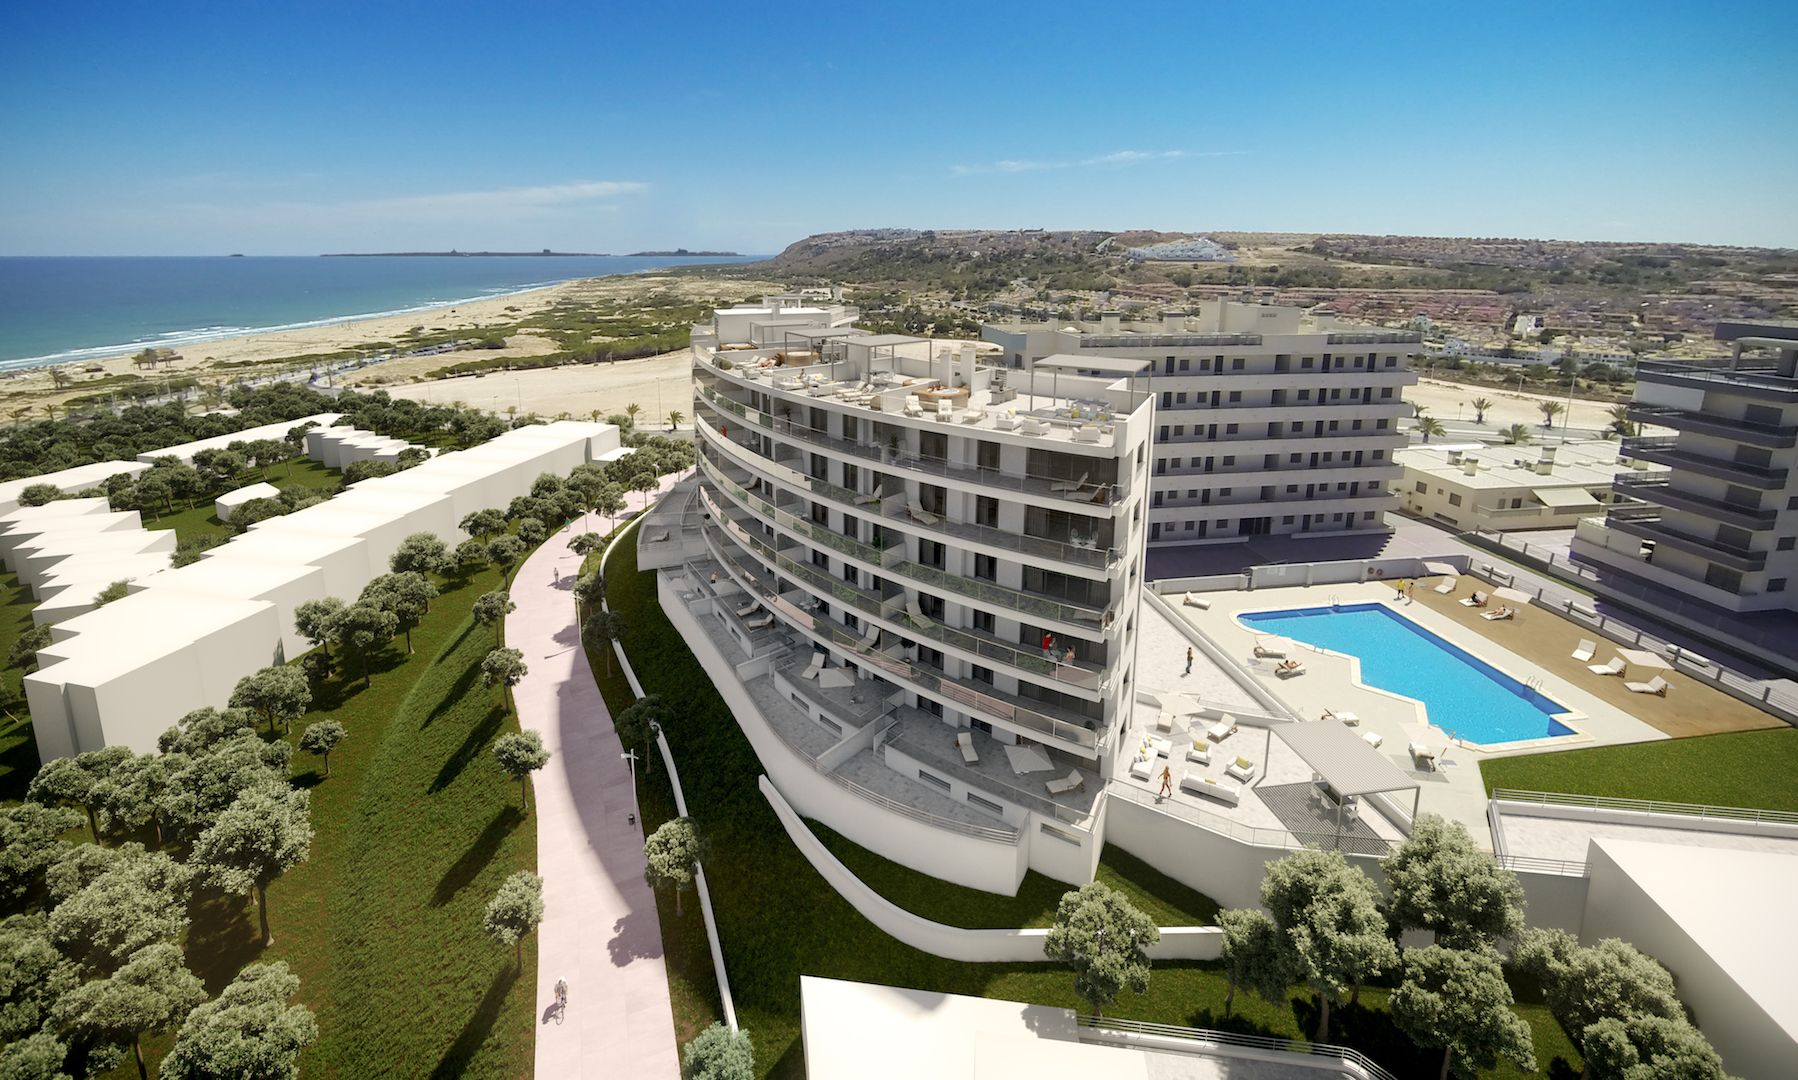 Flats and penthouses of 2, 3 and 4 bedrooms a few meters from the sea in Arenales del Sol. 8